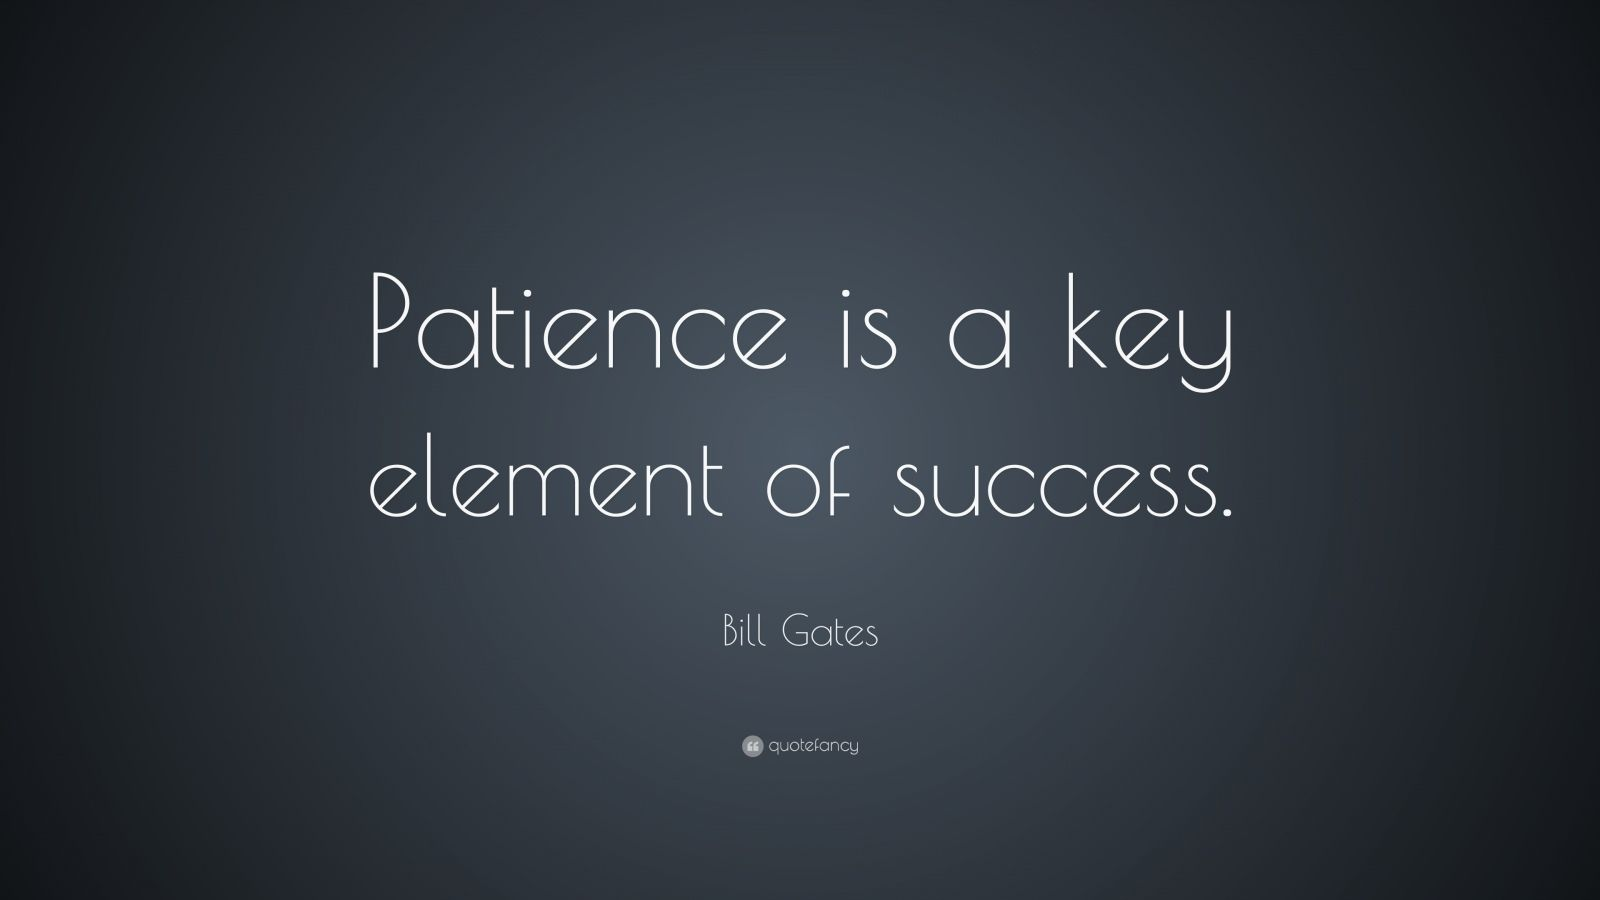 Bill Gates Quotes On Success Wallpaper Bill Gates Quote Patience Is A Key Element Of Success